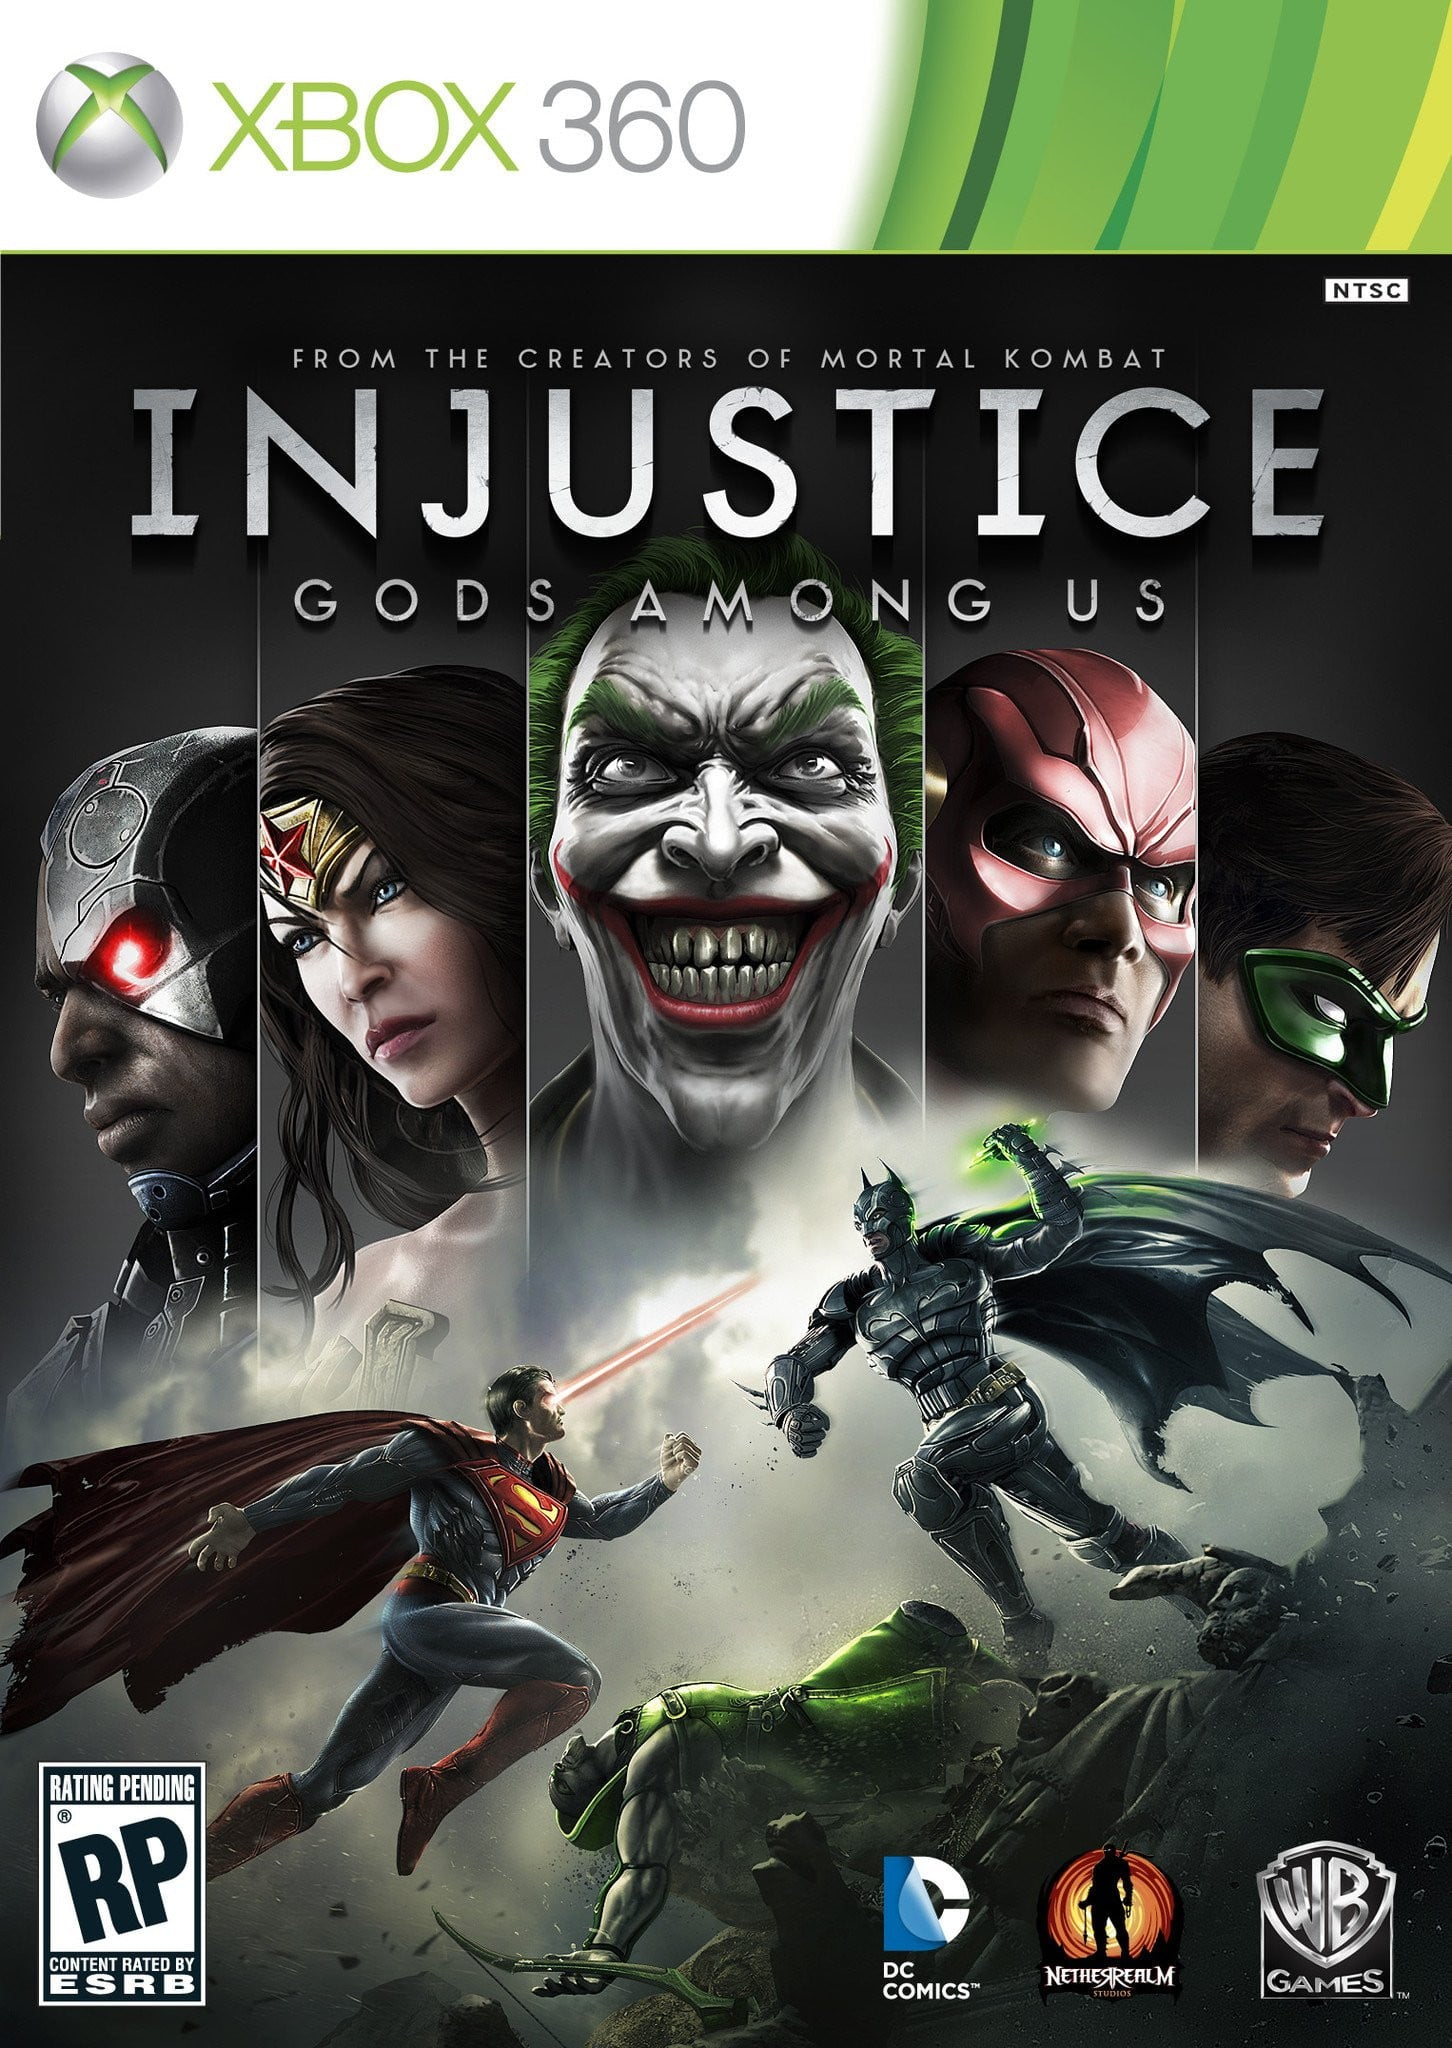 INJUSTICE : Gods Among Us (XBOX 360) XBOX 360 Game - Shamy Stores